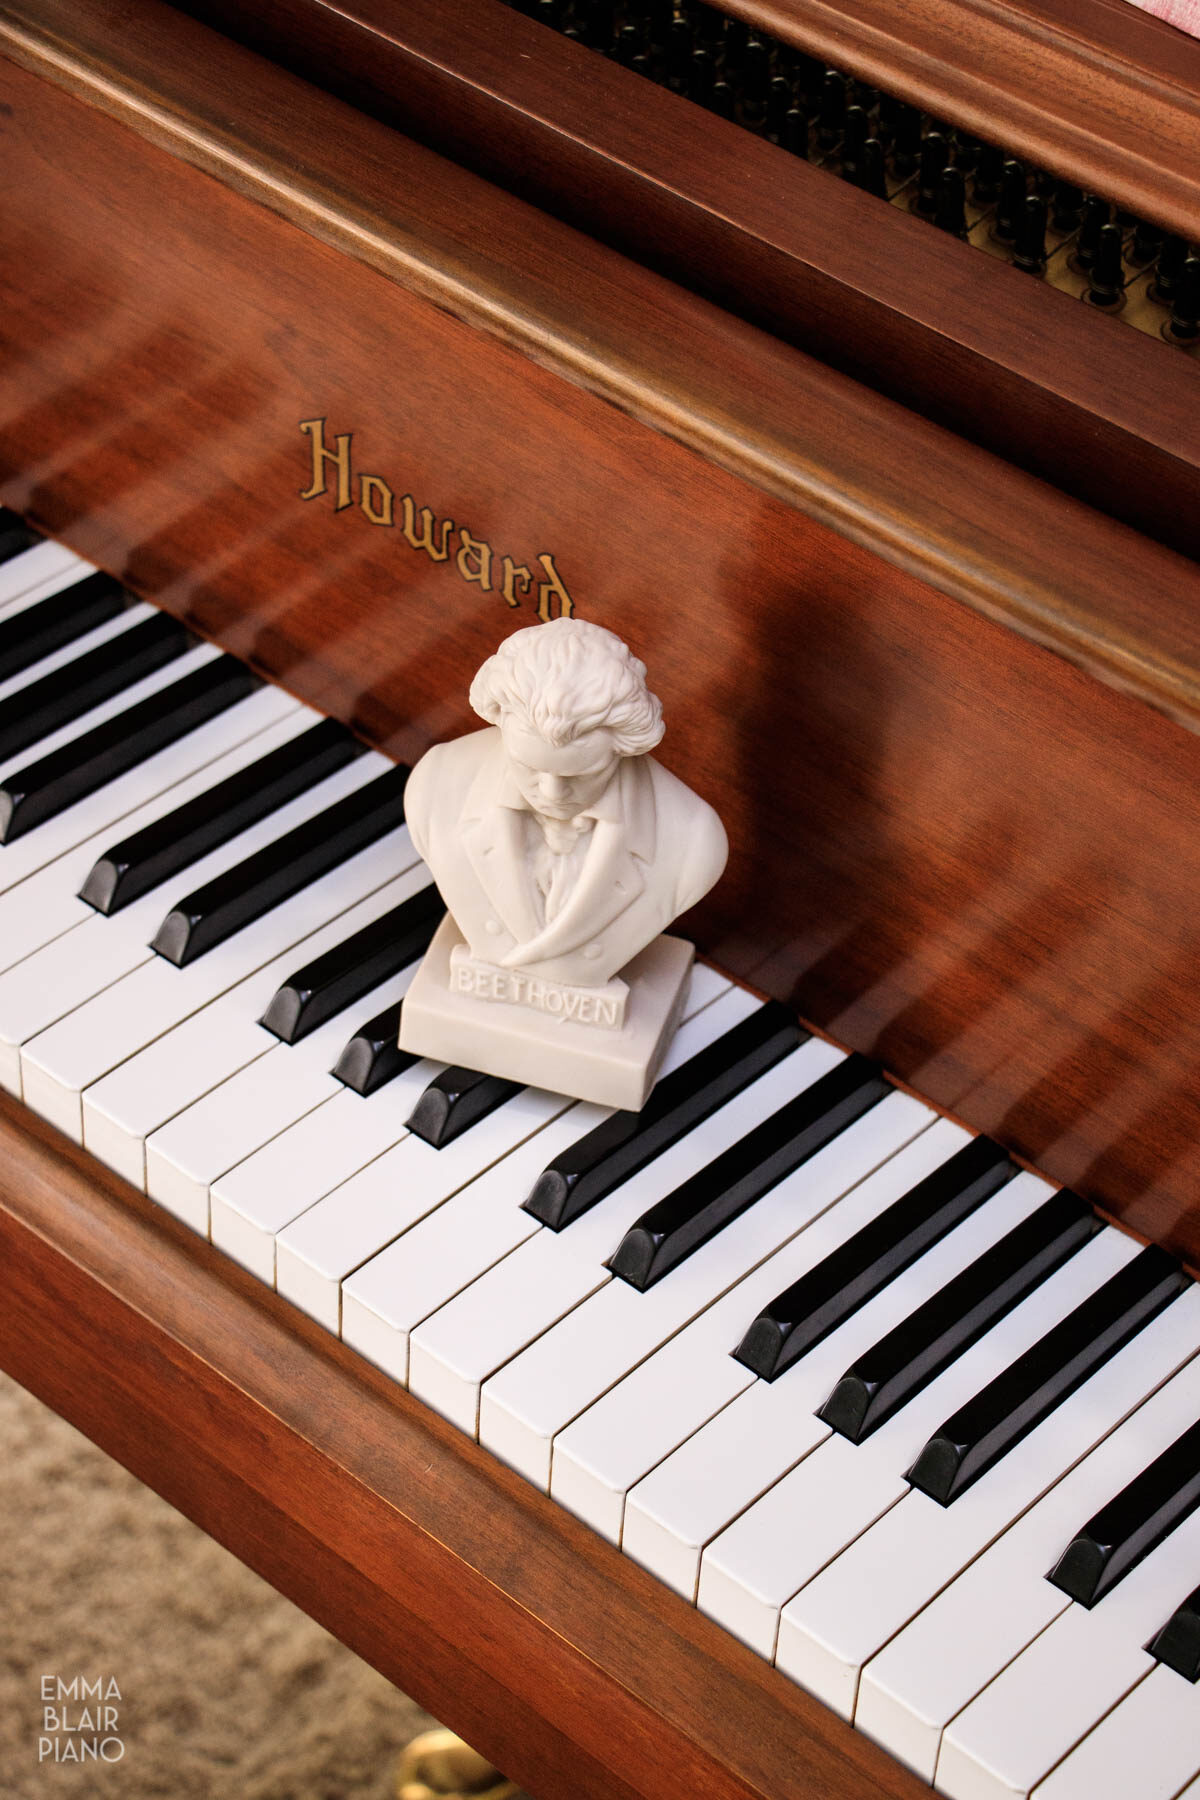 small bust of Beethoven sitting on a piano keyboard